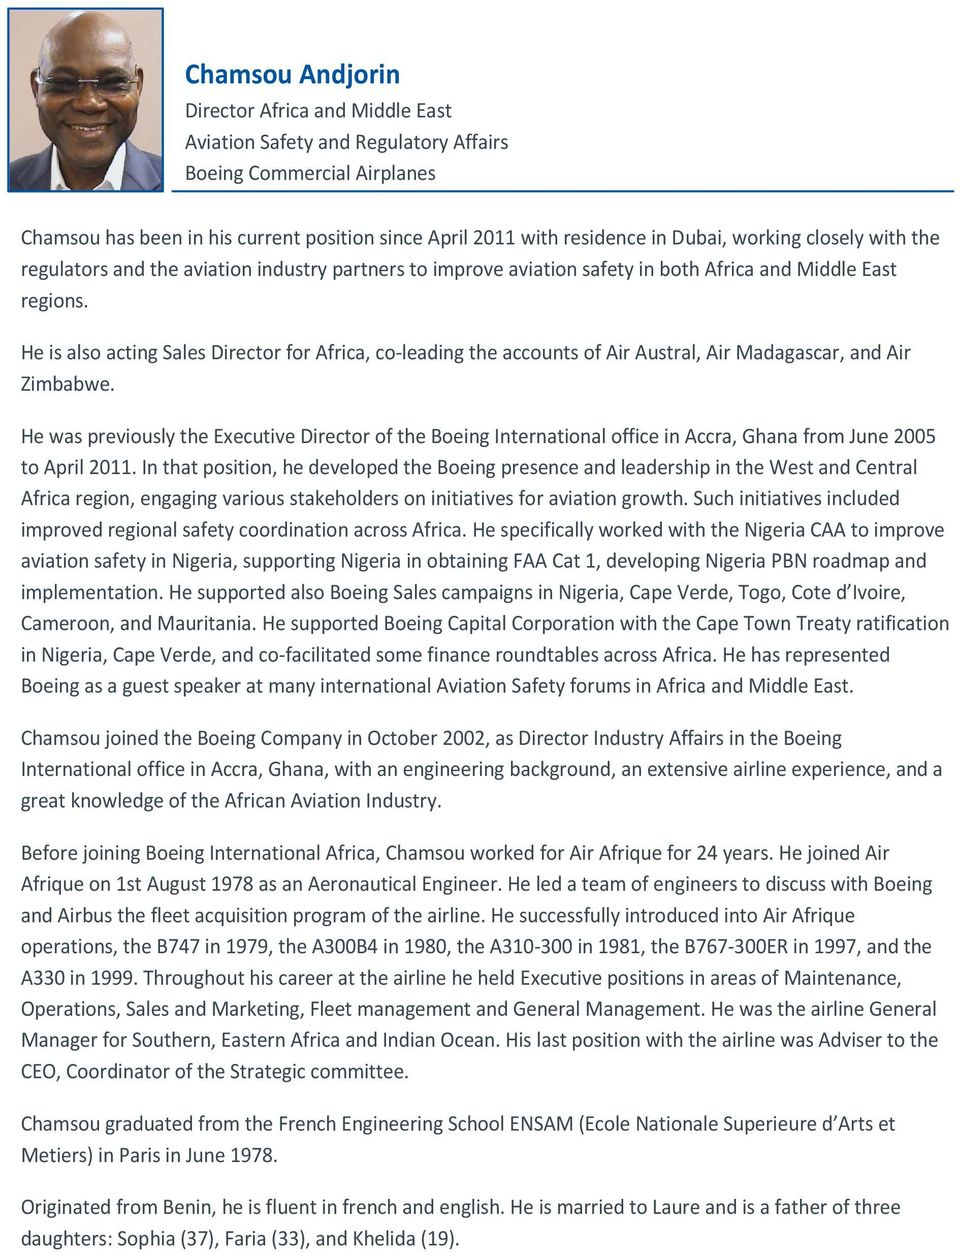 He is also acting Sales Director for Africa, co-leading the accounts of Air Austral, Air Madagascar, and Air Zimbabwe.